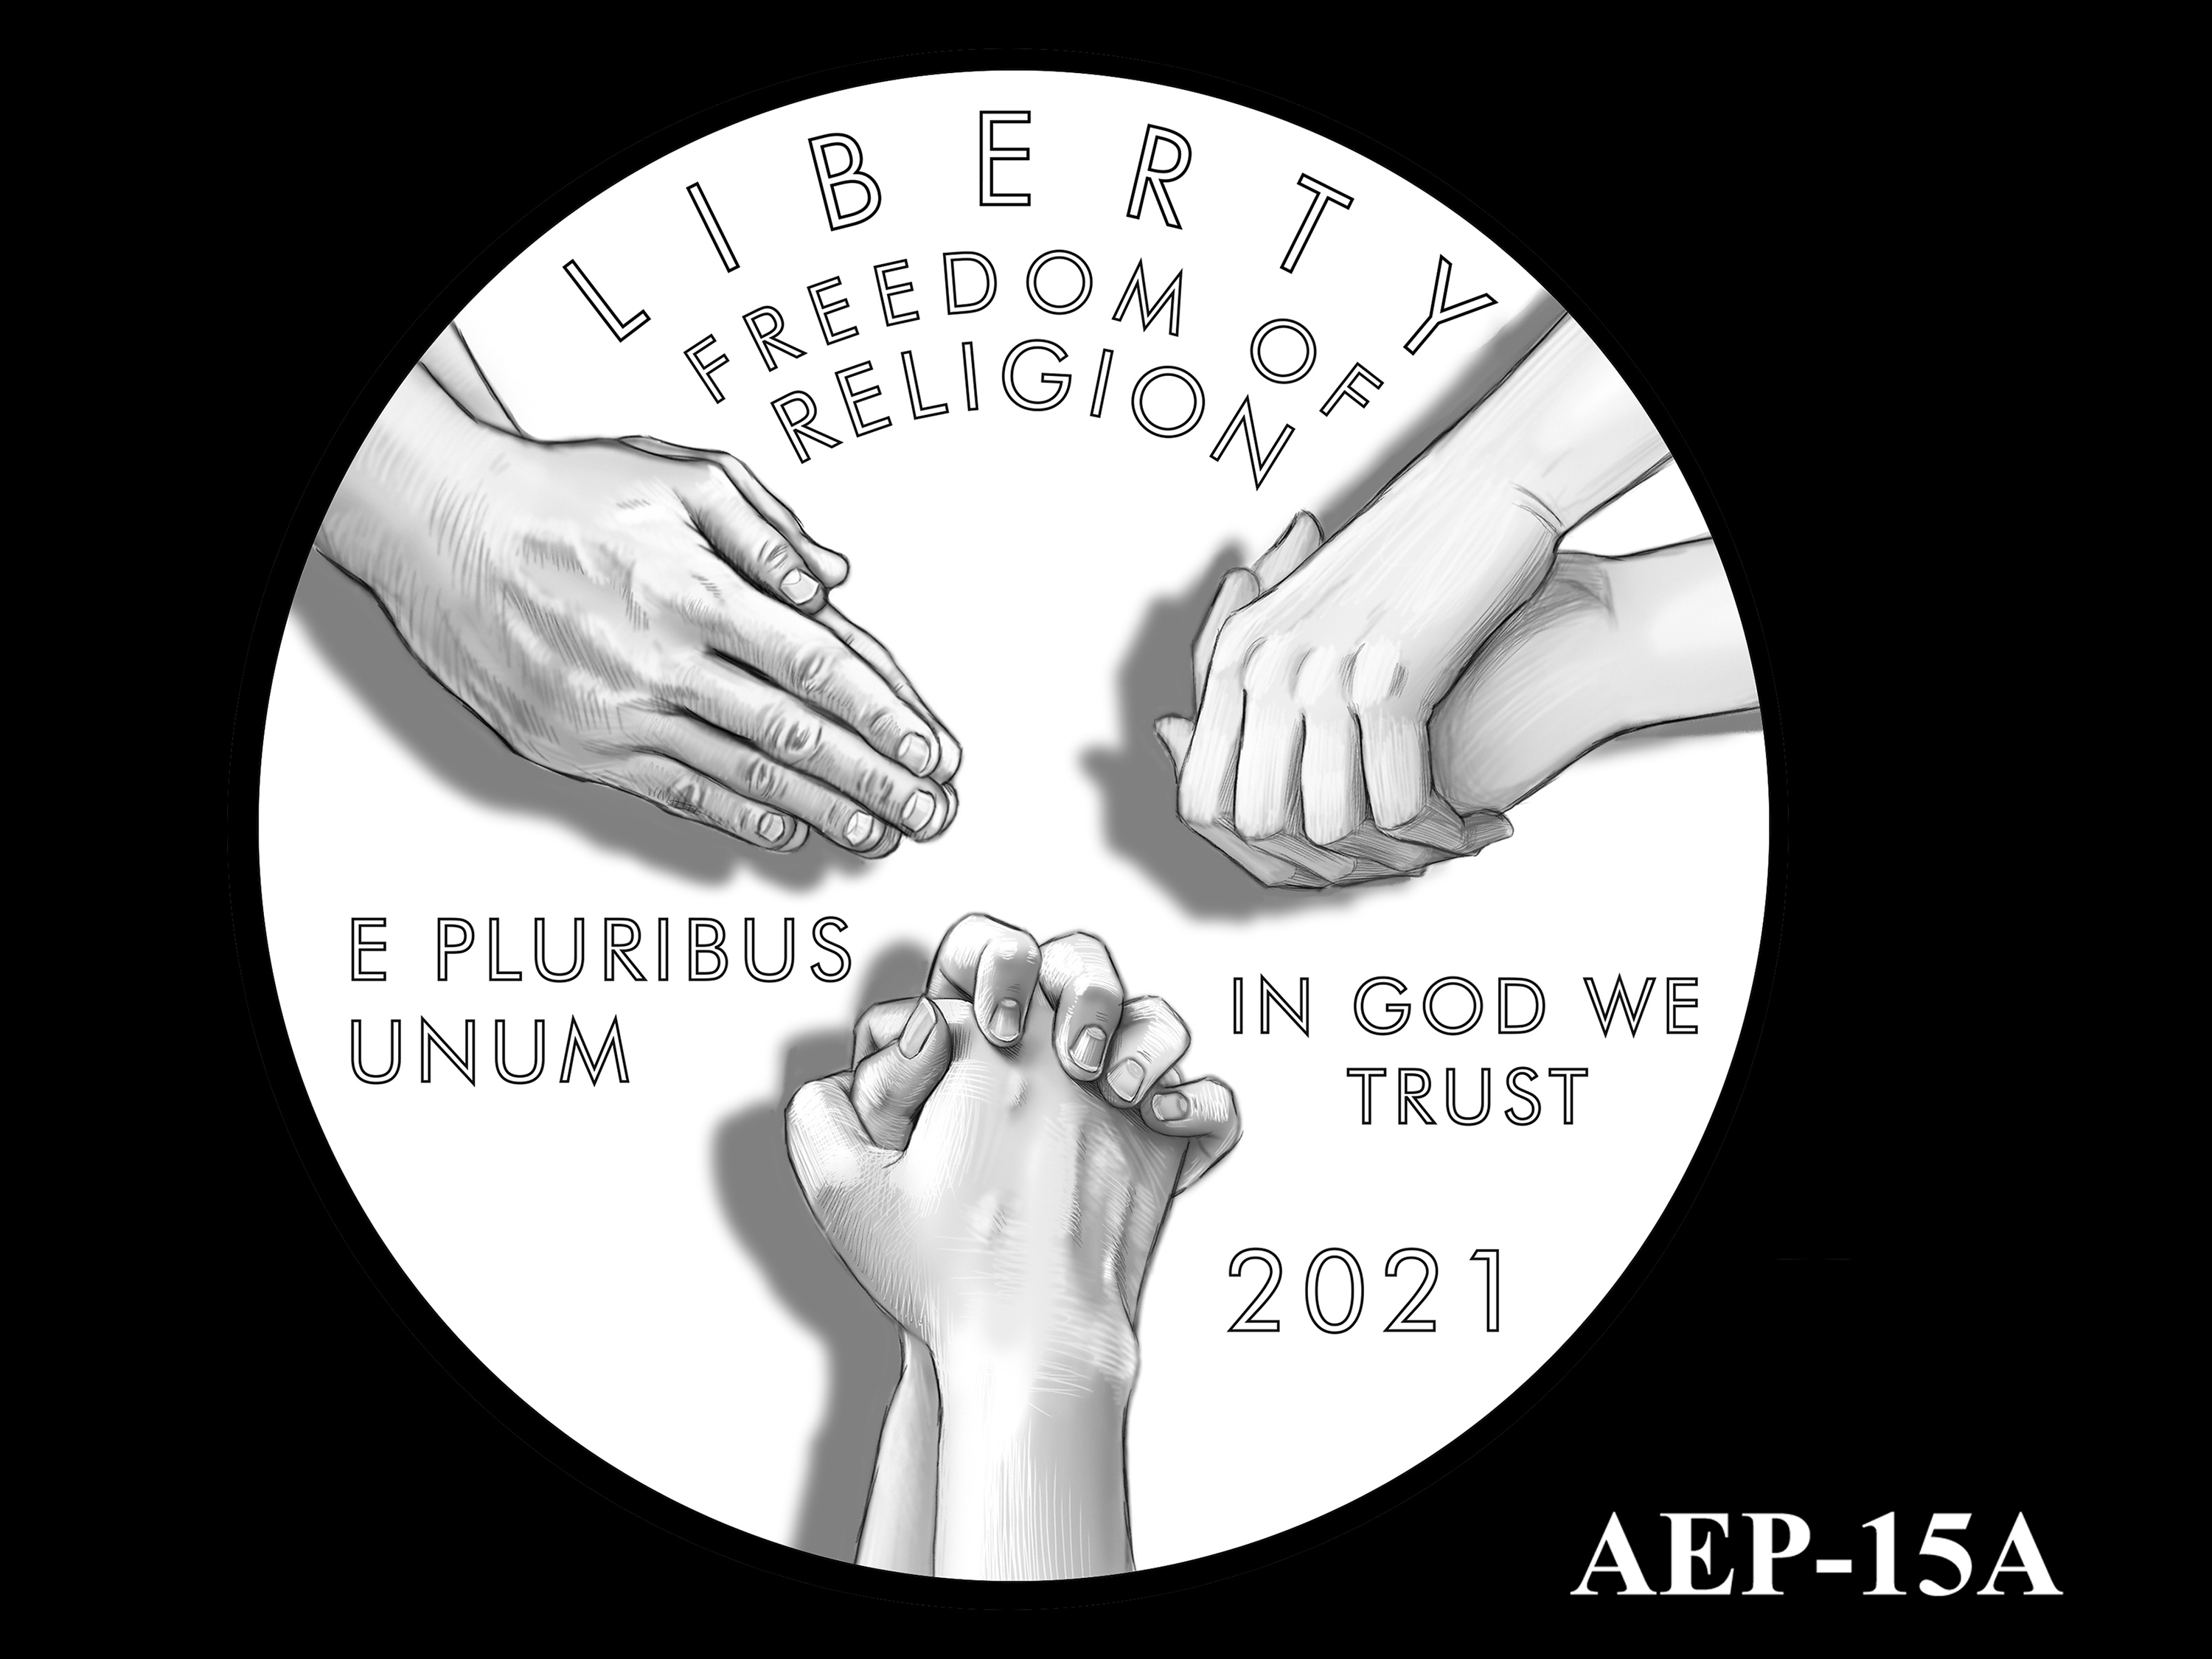 AEP-15A -- 2021 American Eagle Platinum Proof Program